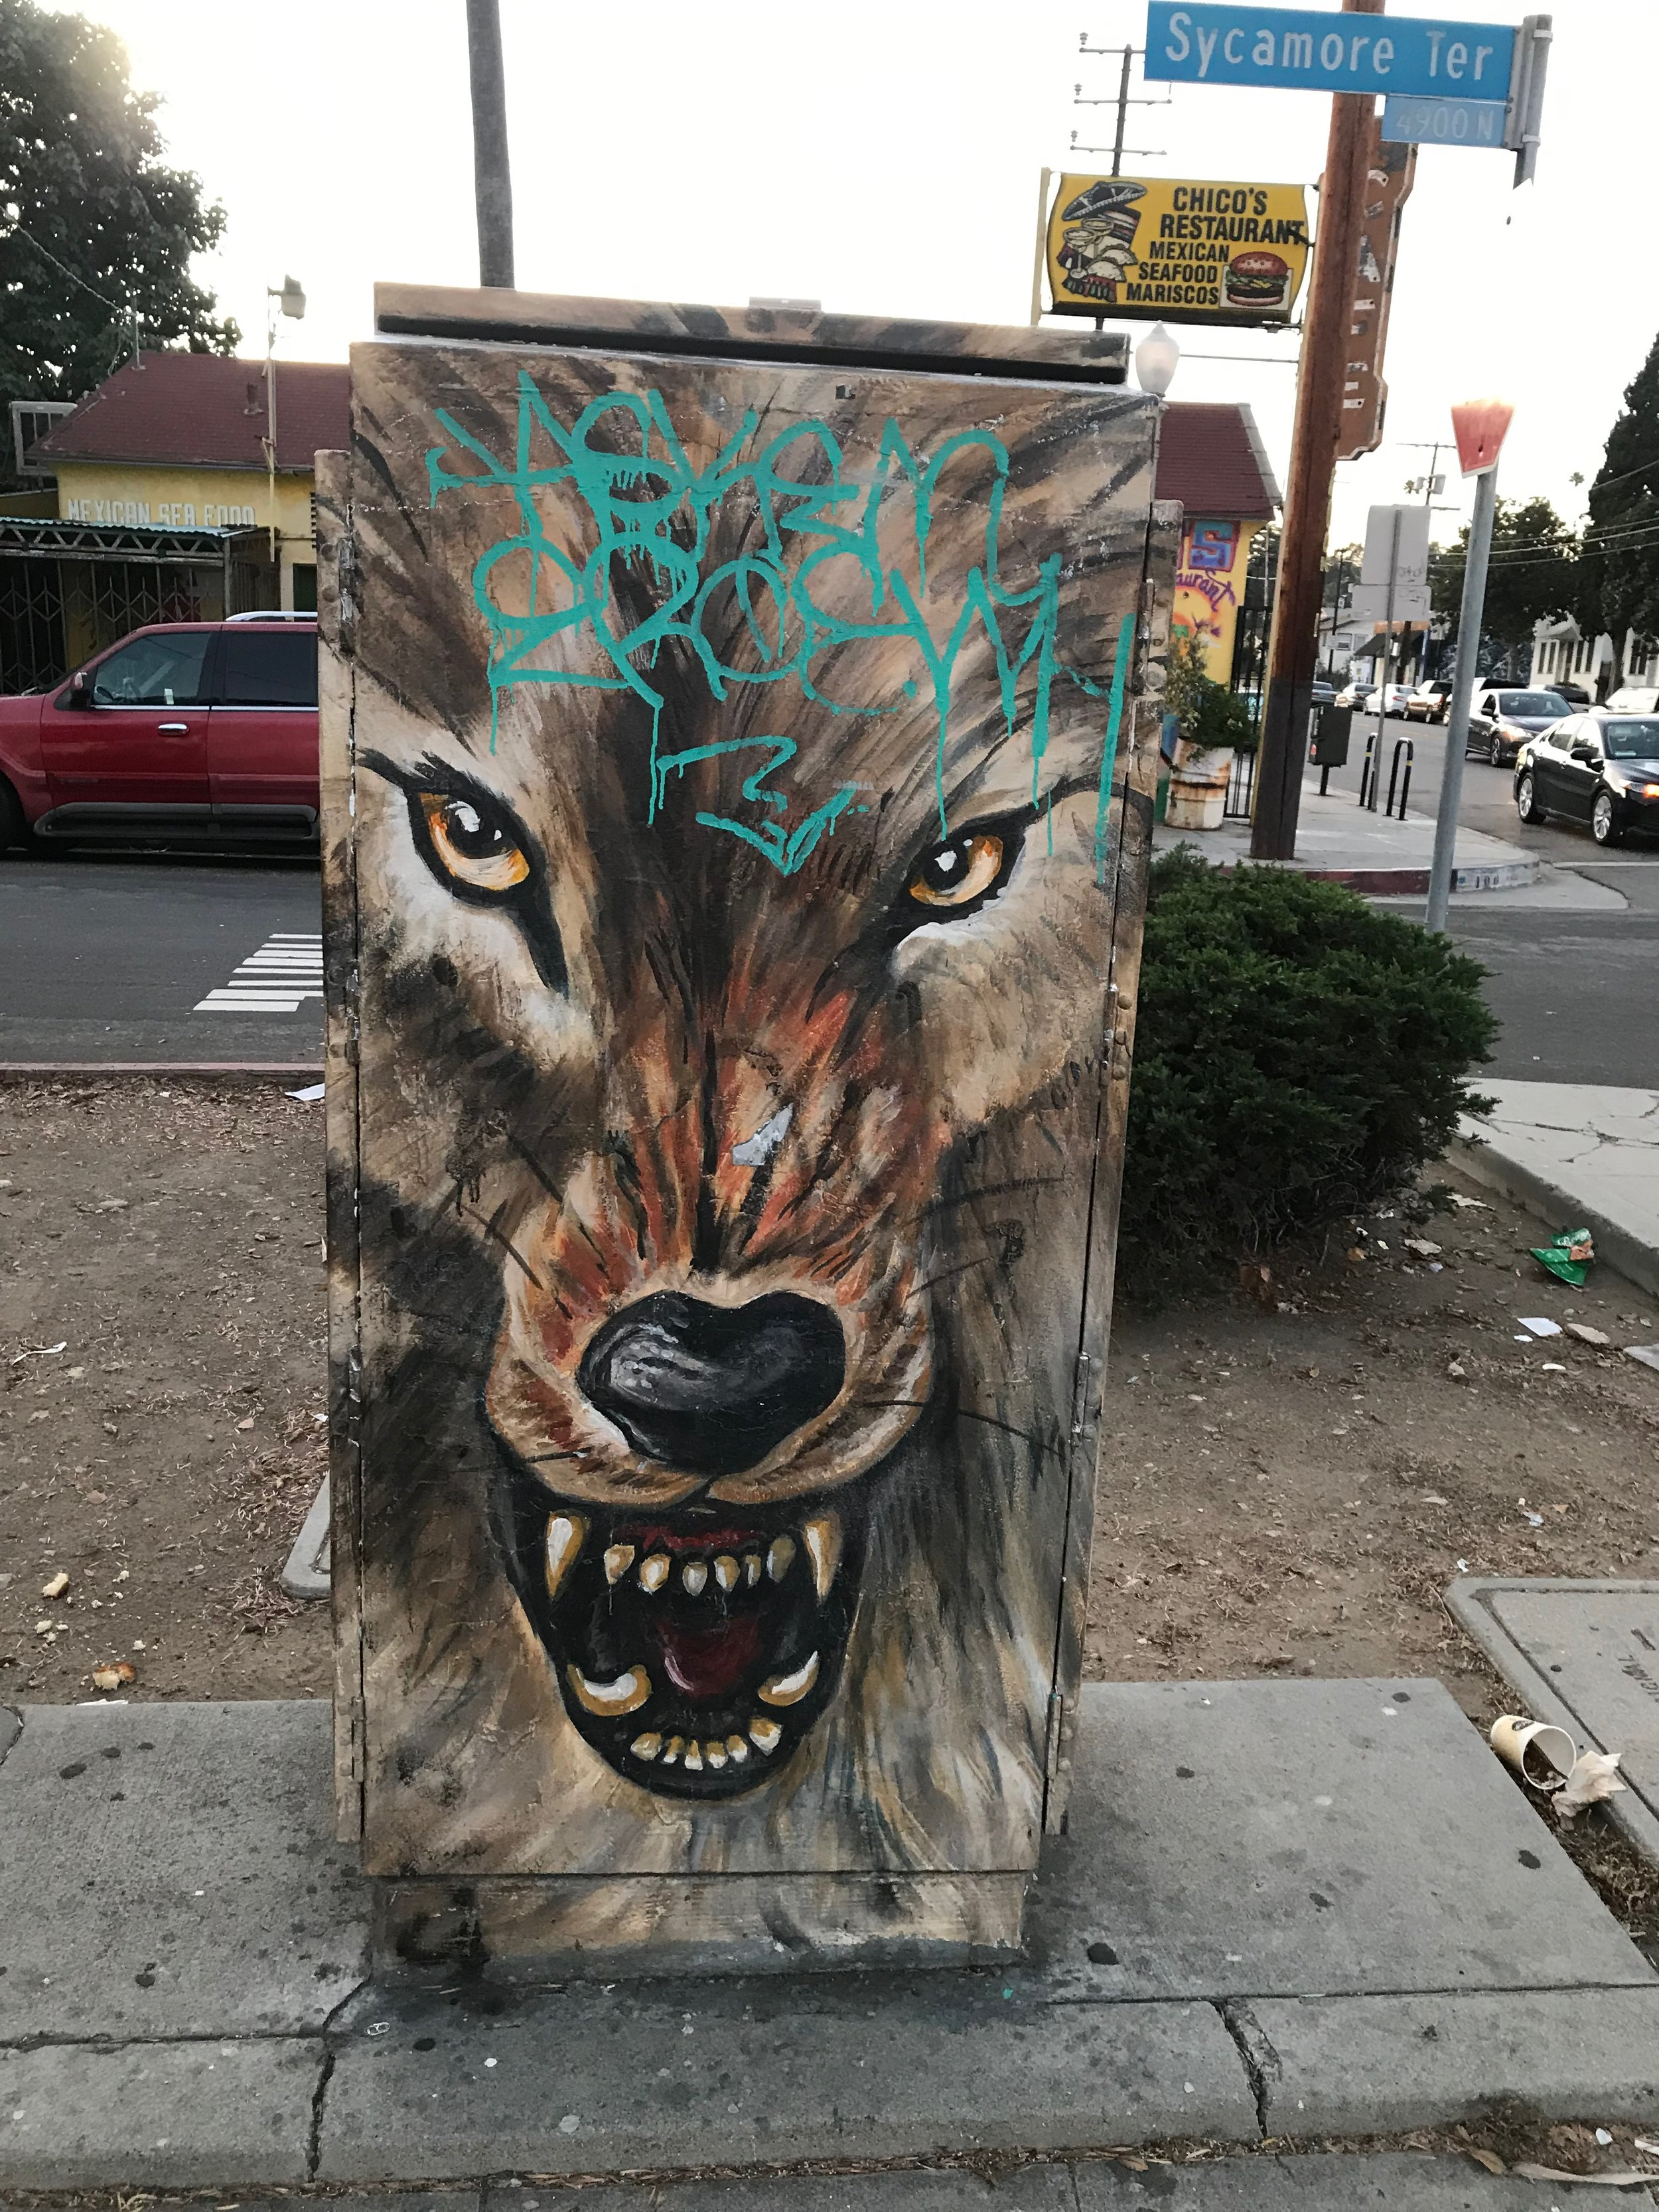 Electric box in Highland Park off North Figueroa Street (image provided by the author).